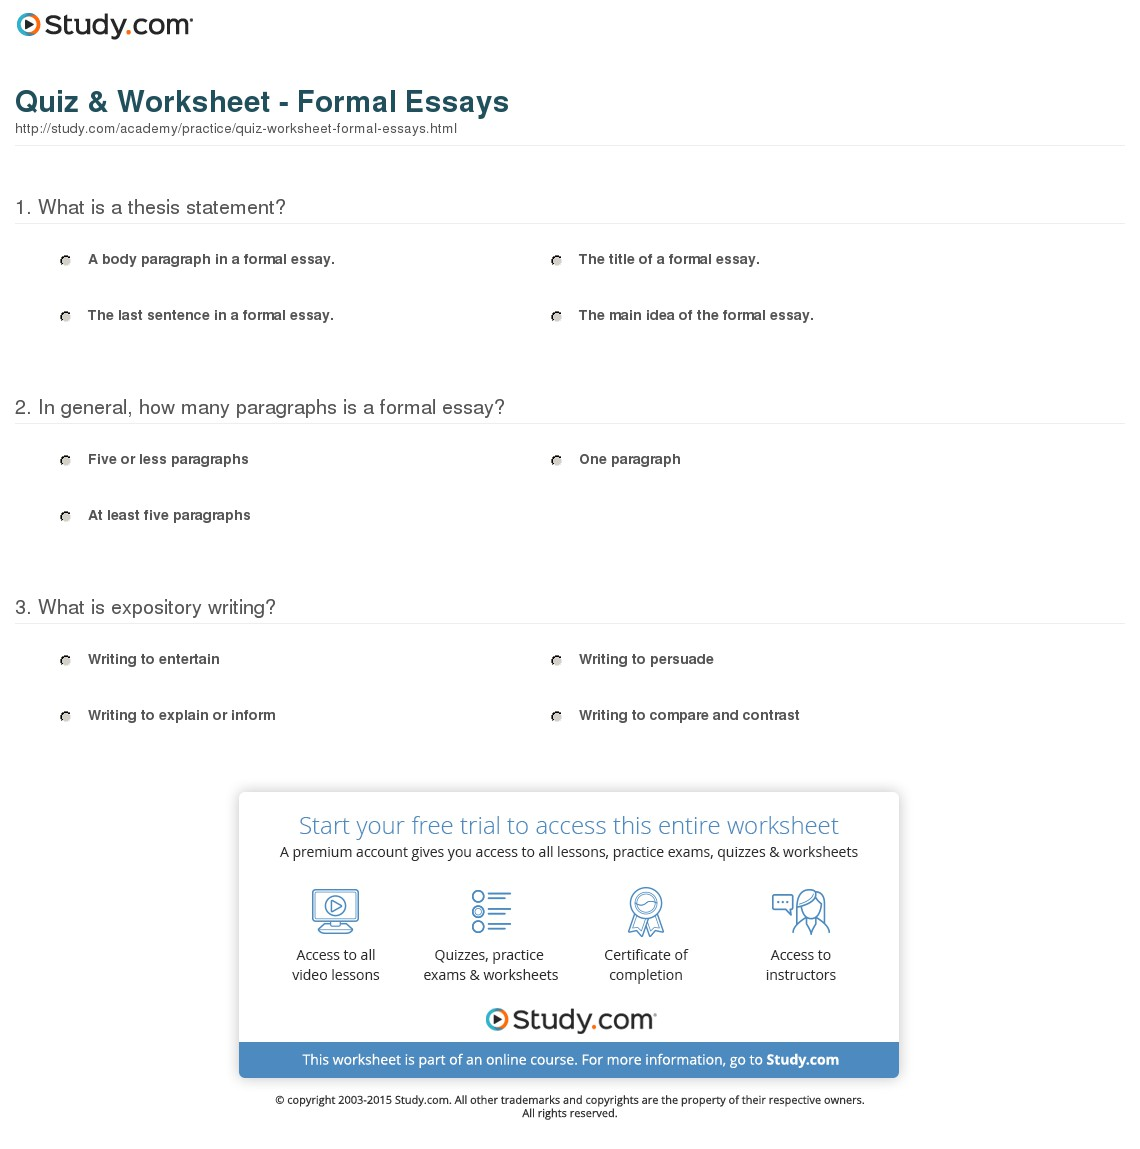 021 Quiz Worksheet Formal Essays Essay Example What Is Impressive A Analysis Academic Analytical Full